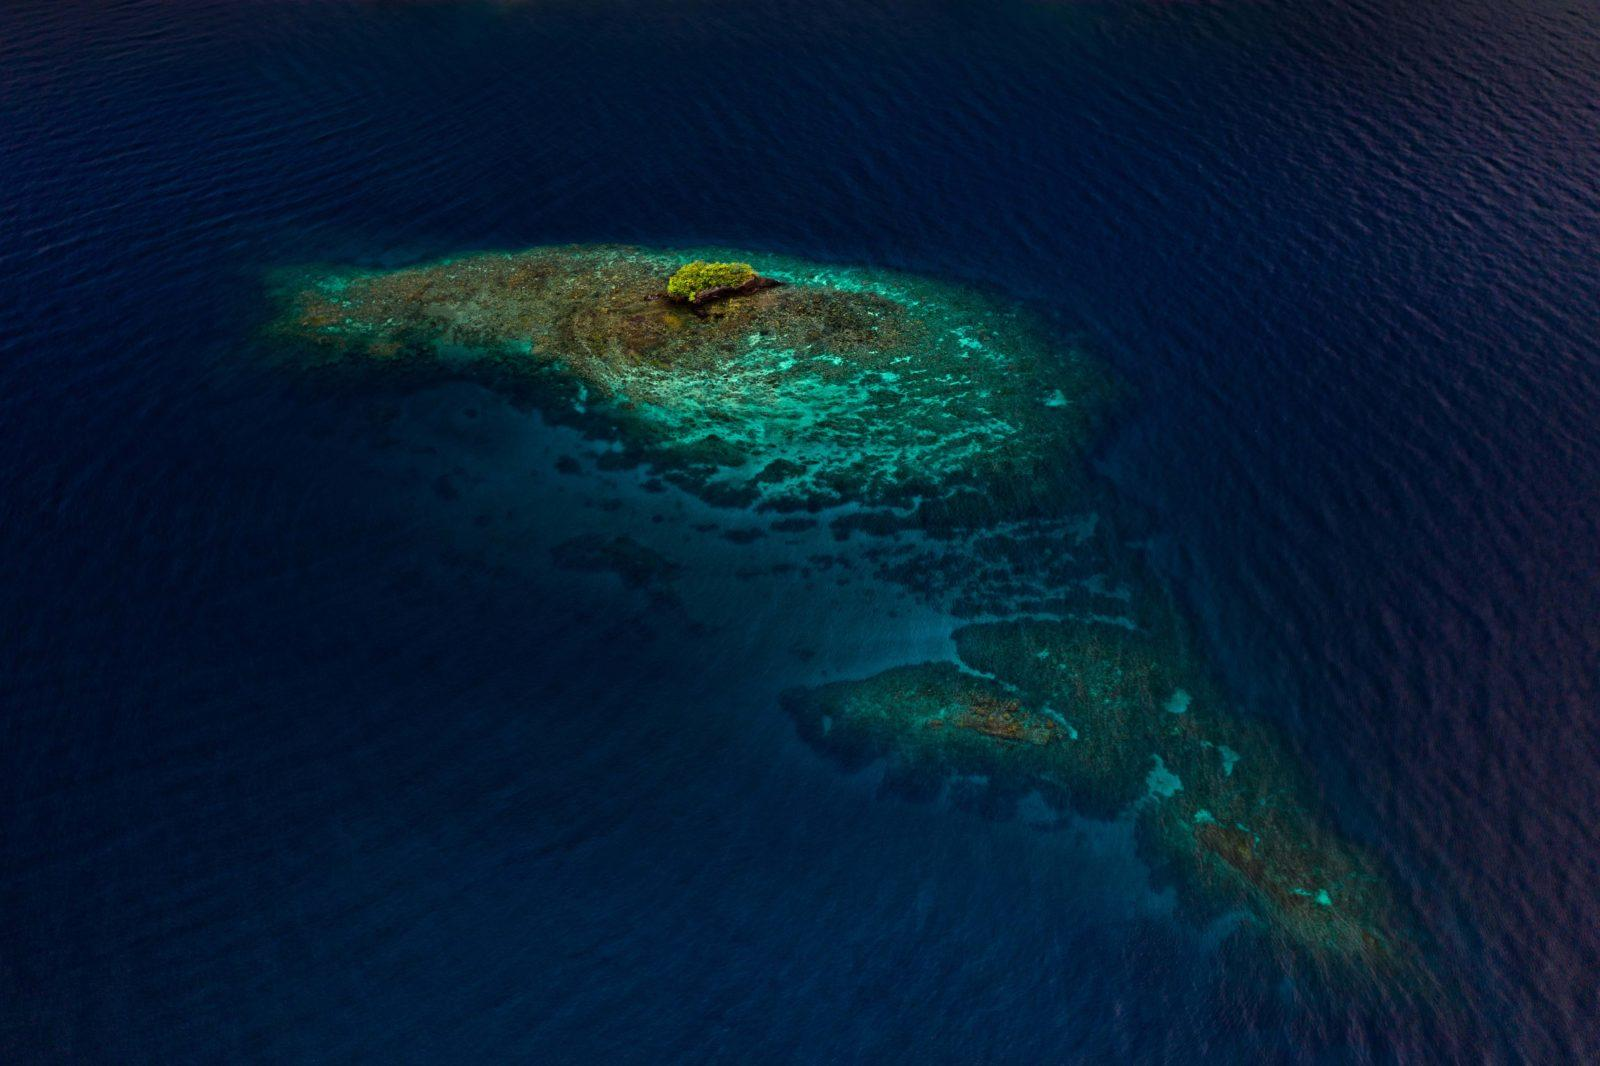 Ann Sophies Reef from the Air by Jackson Groves